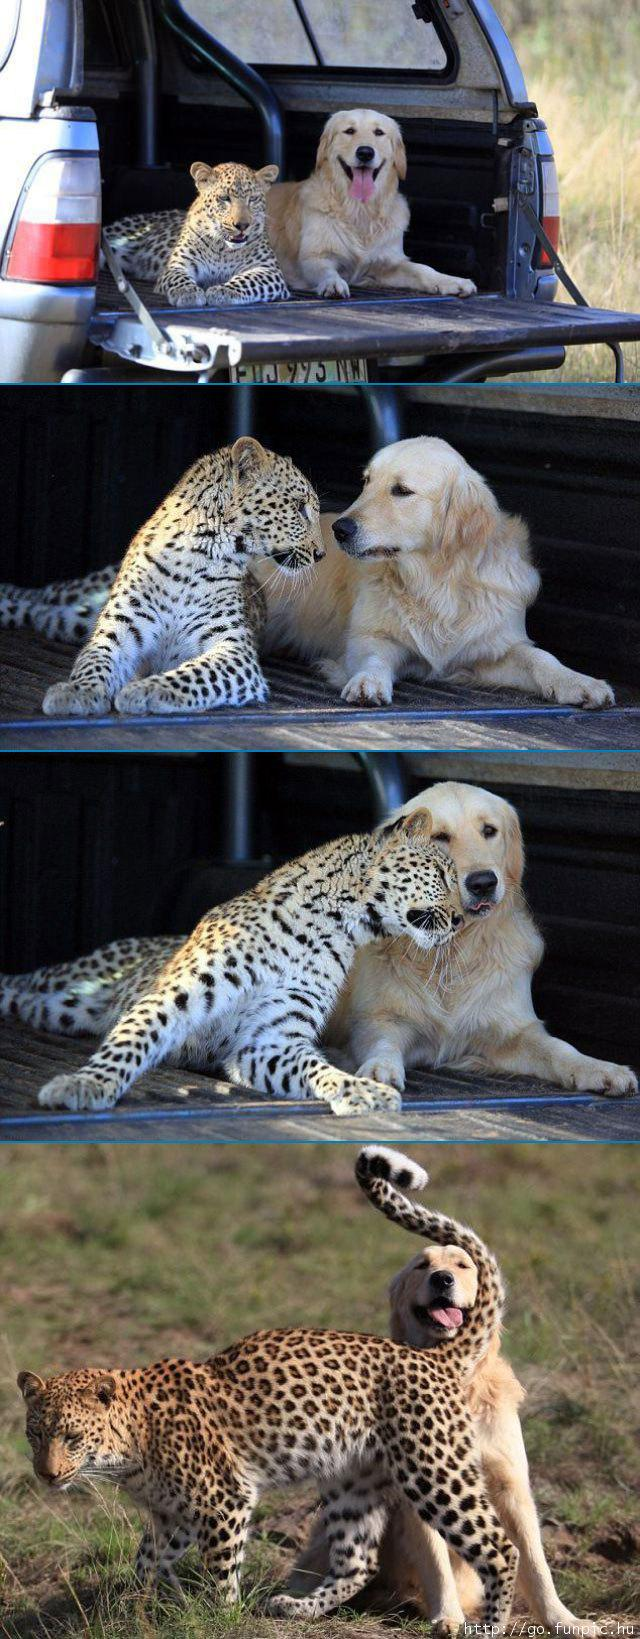 leopard and golden retriever best friends